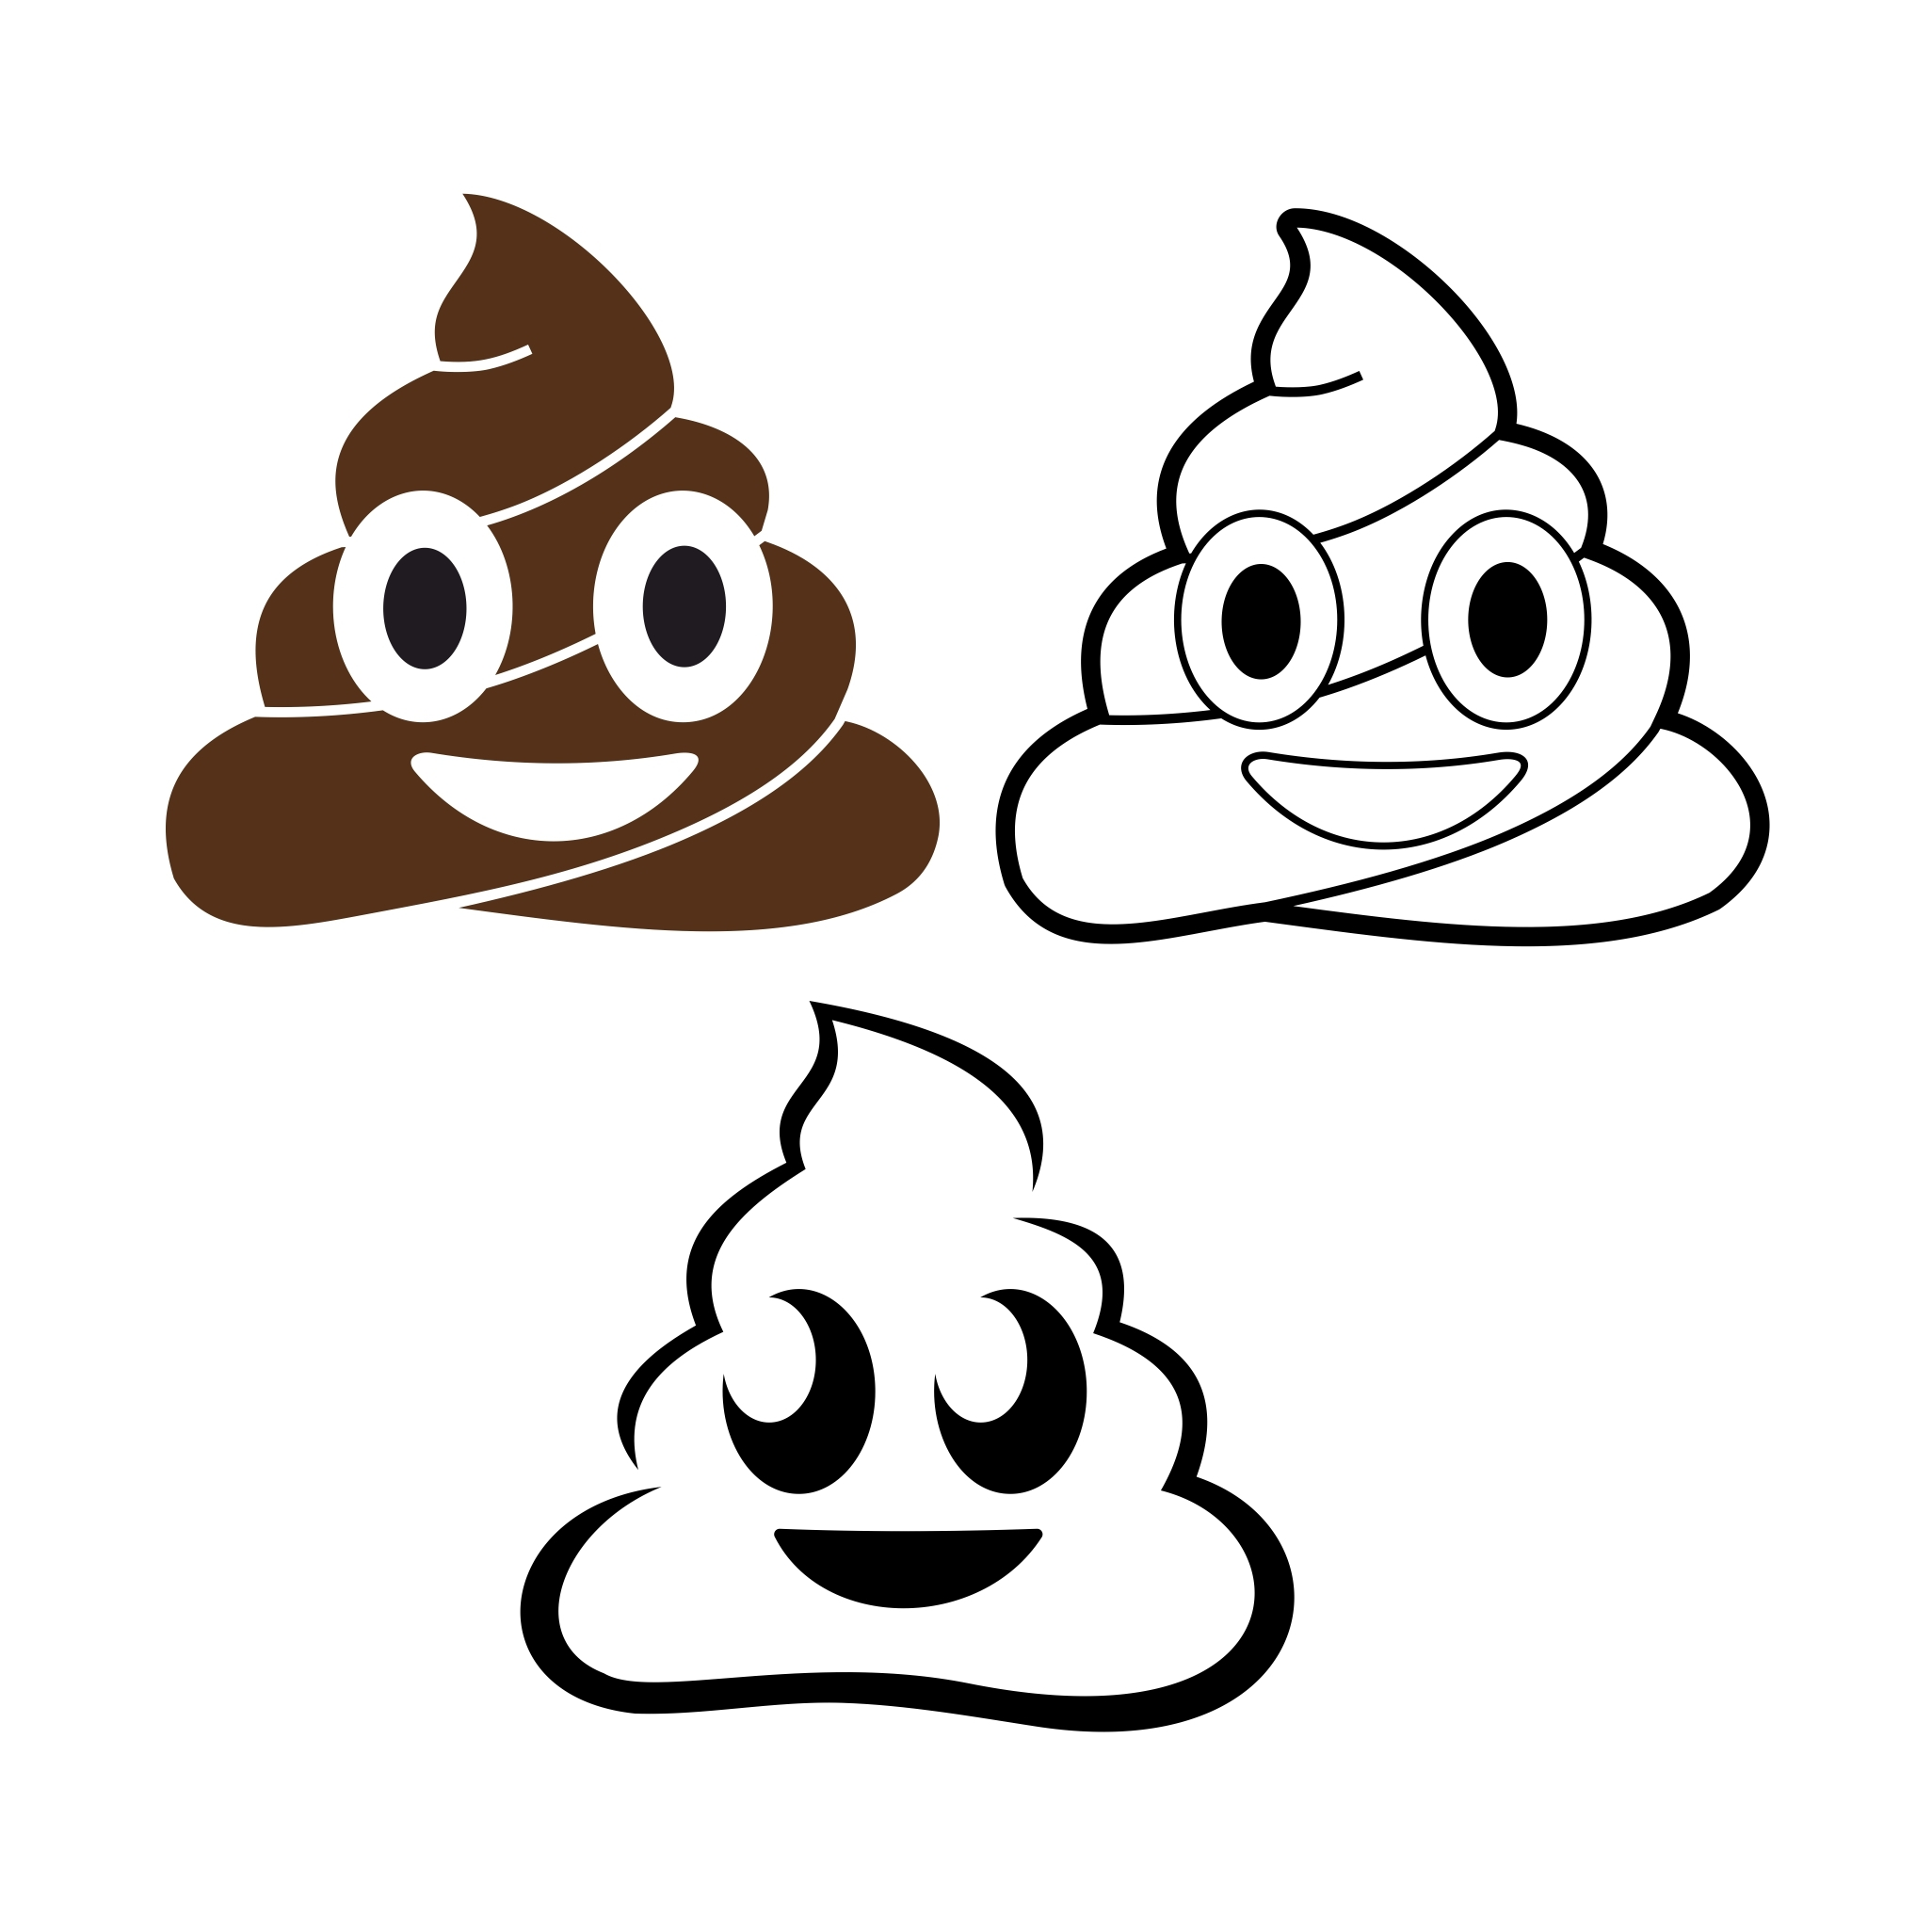 2052x2052 Poop Emoji Design Svg Dxf Eps Png Cdr Ai Pdf By Vectordesign On Zibbet